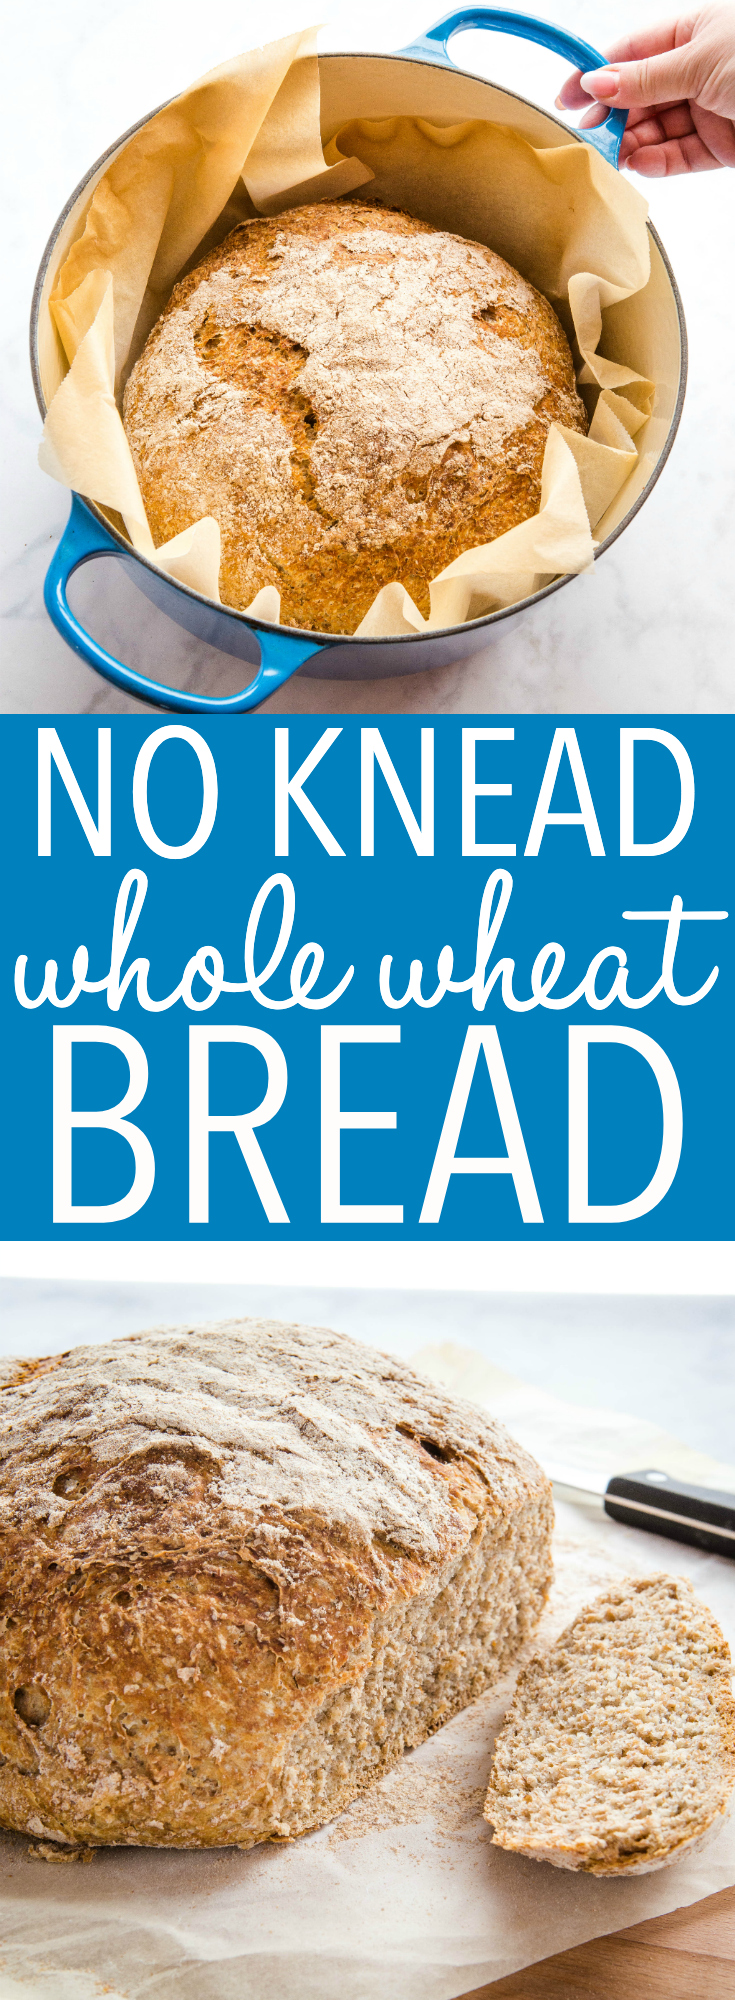 This No Knead Whole Wheat Artisan Bread is the perfect easy whole wheat bread recipe! No overnight rising, no kneading - it's the perfect hearty, crusty loaf! Recipe from thebusybaker.ca! #wholewheat #bread #homemade #homemadebread #wholegrain #dutchoven #howtomakebread #howtomakehomemadebread #healthybread #health via @busybakerblog